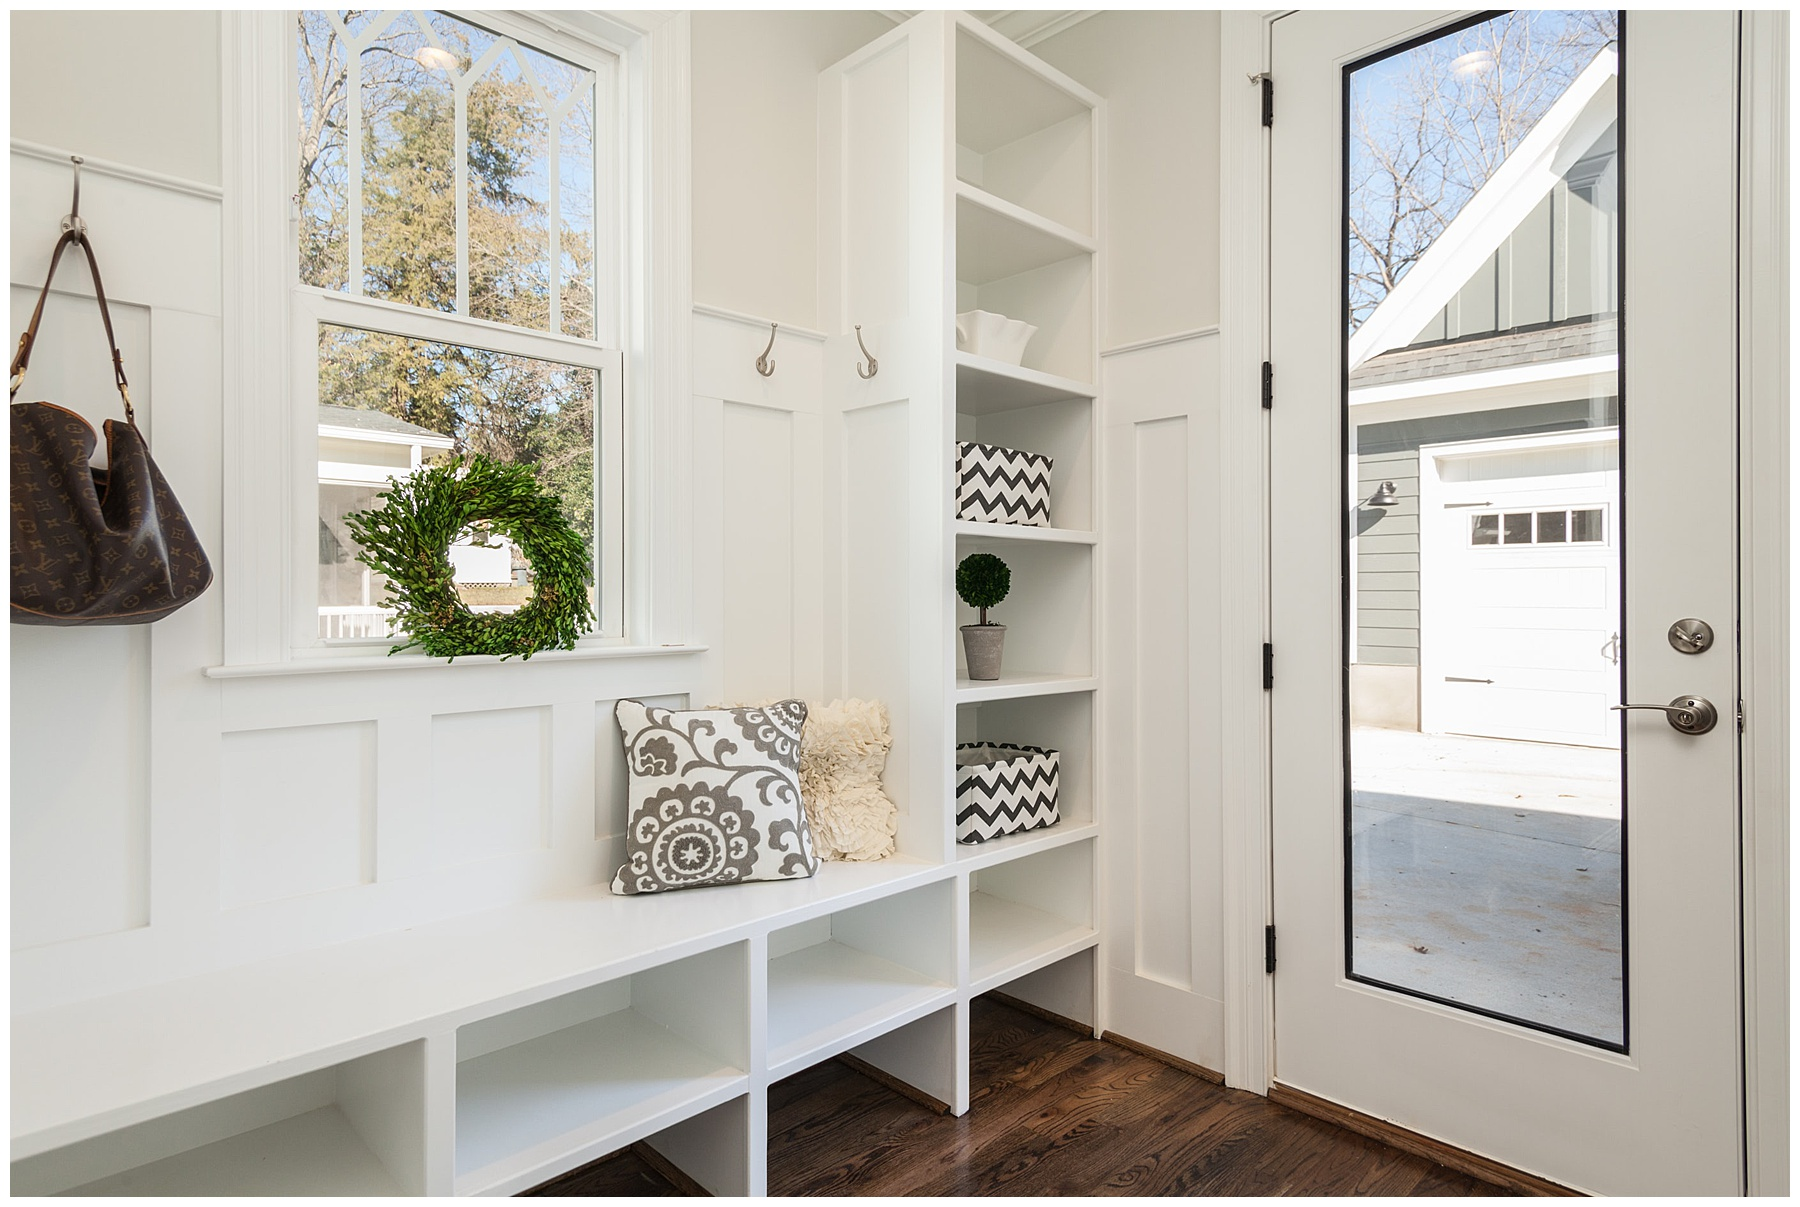 Large mudroom with bench seating and storage shelves for shoes, jackets, etc.